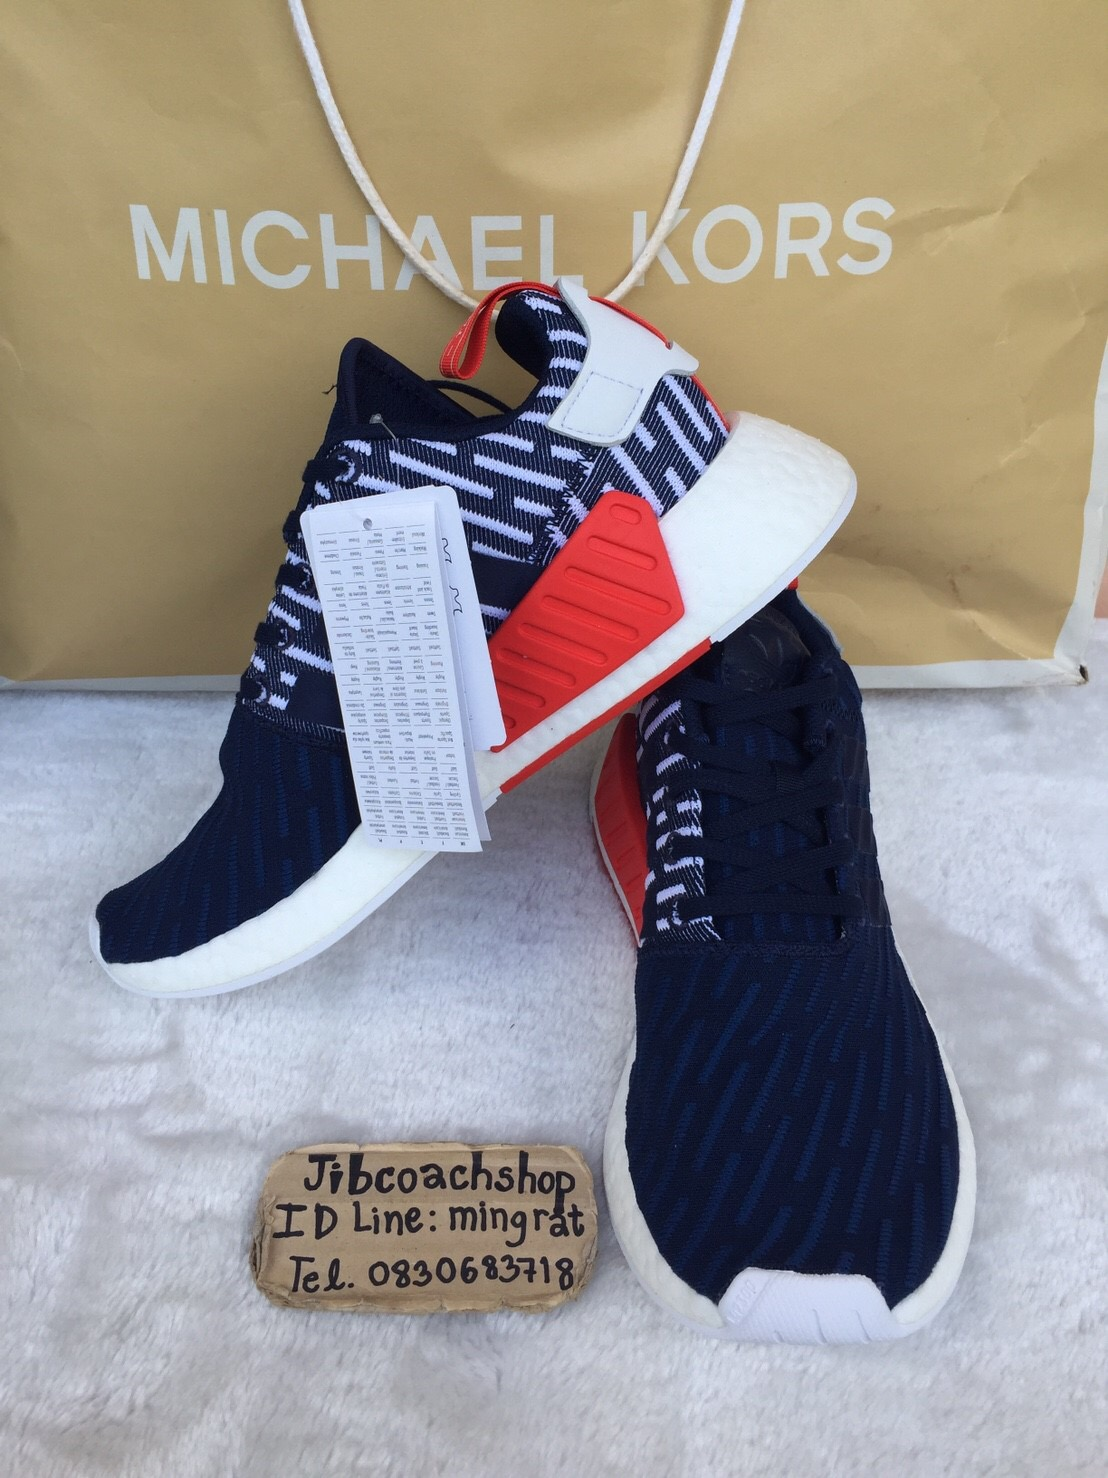 8d66753ad ADIDAS BB2952 ORIGINALS NMD R2 PRIMEKNIT SHOES UK8 - jibcoachshop    Inspired by LnwShop.com